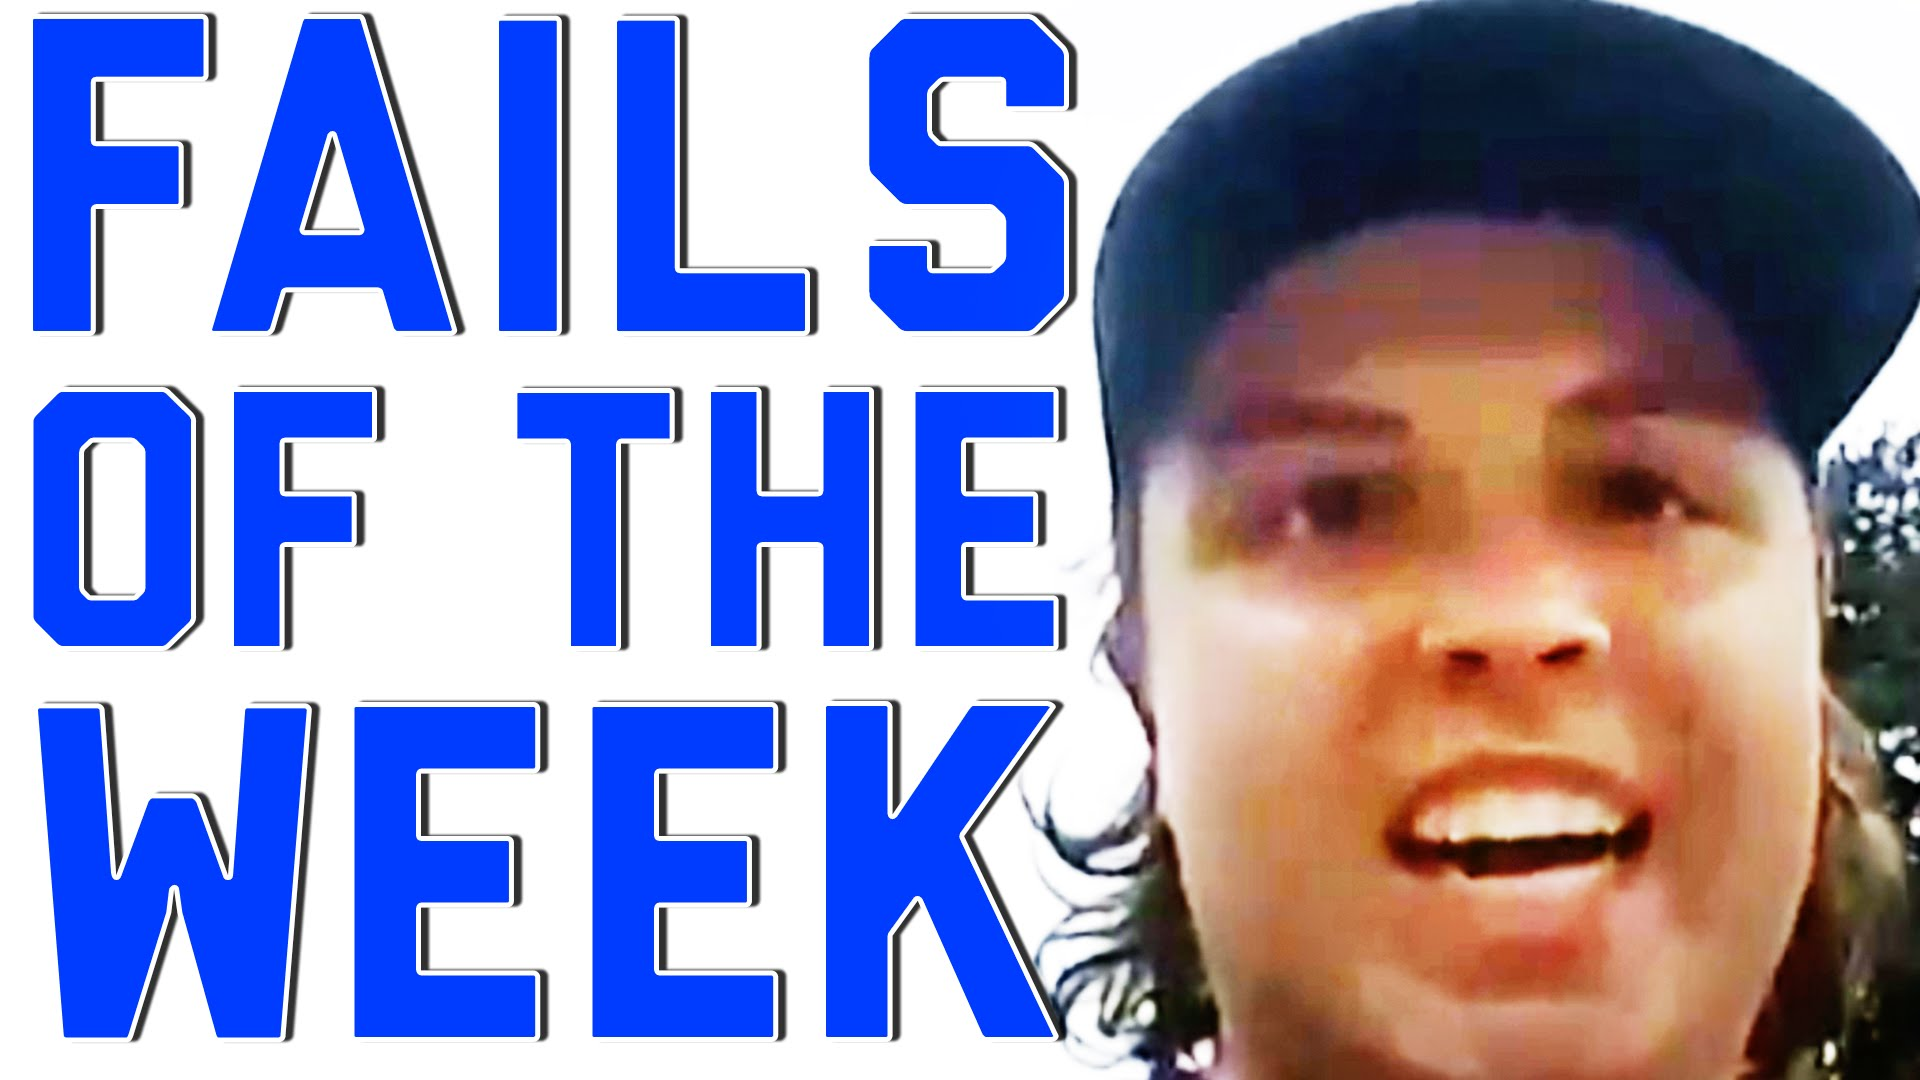 Friday Fails – July 3, 2015